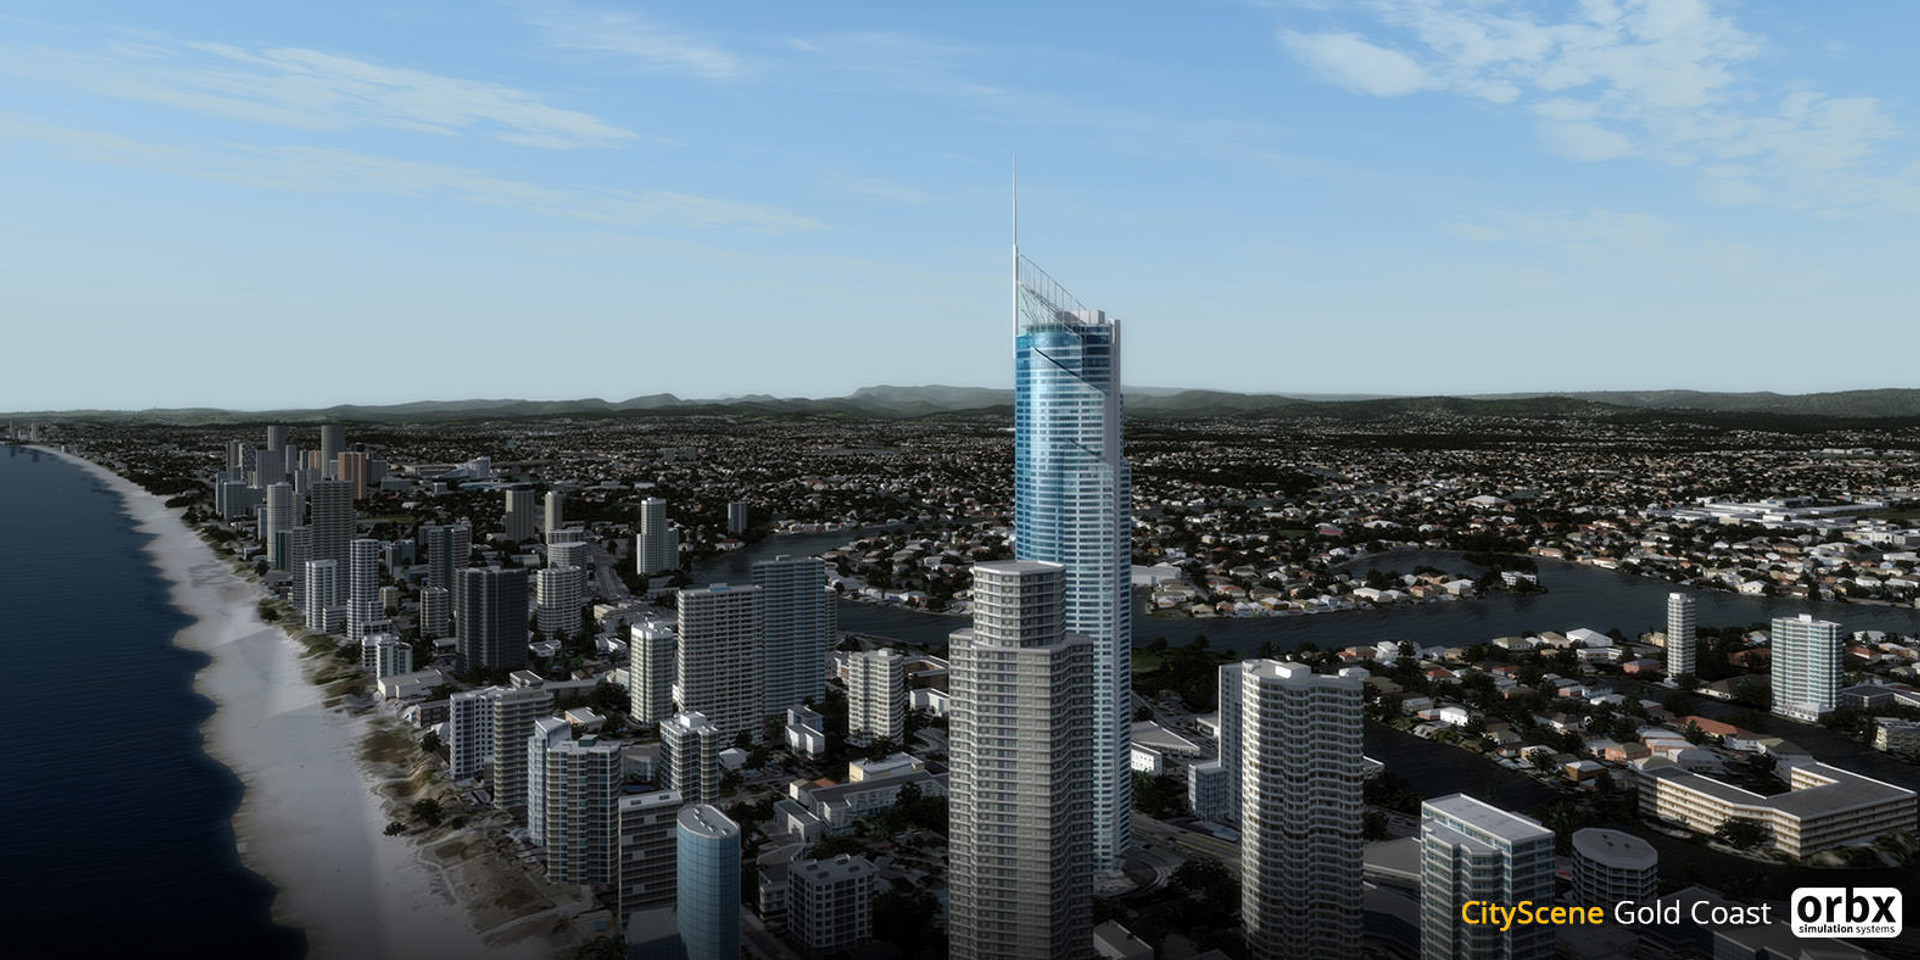 Orbx CityScene Gold Coast Previews